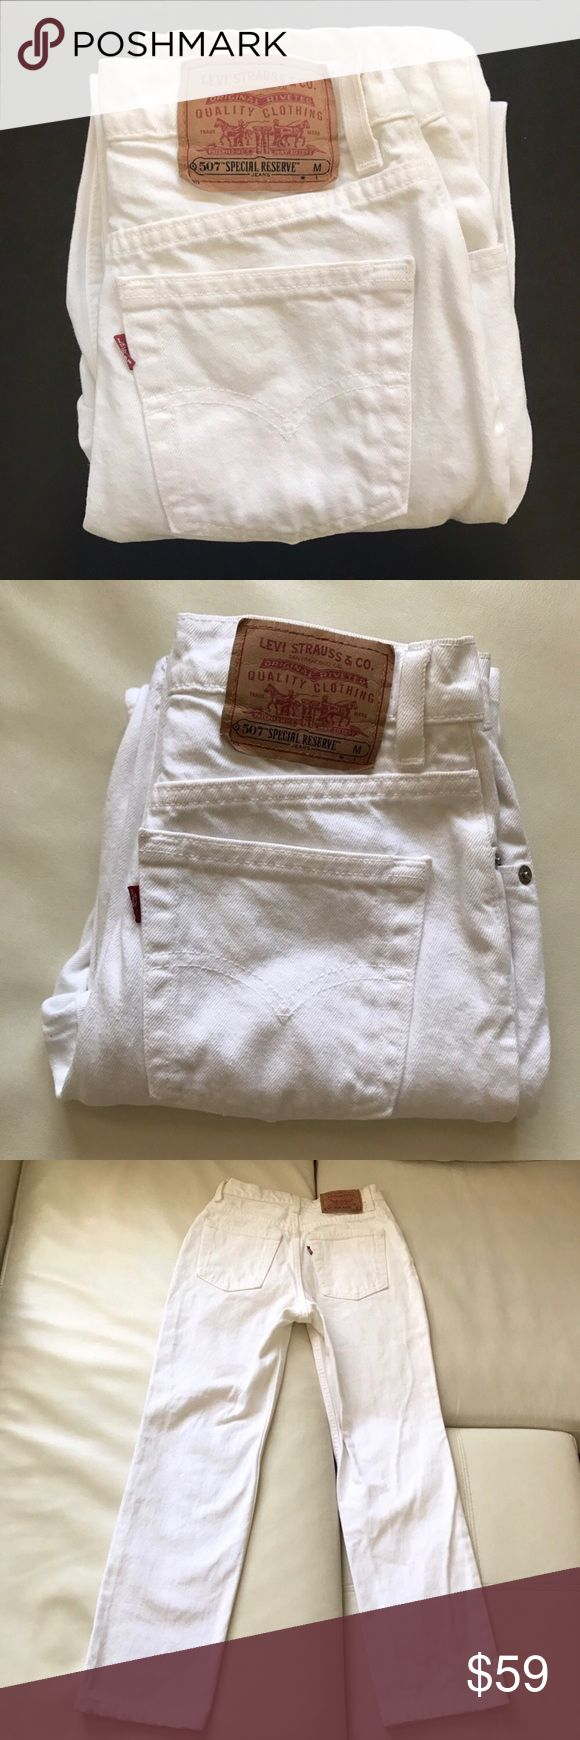 "LEVI'S 507 jeans special reserve white juniors 5 Classic high rise white jeans for young girls. Perfect for spring or summer.  Waist 24"" Rise 10"" Inseam 27"" Levi's Jeans Straight Leg"